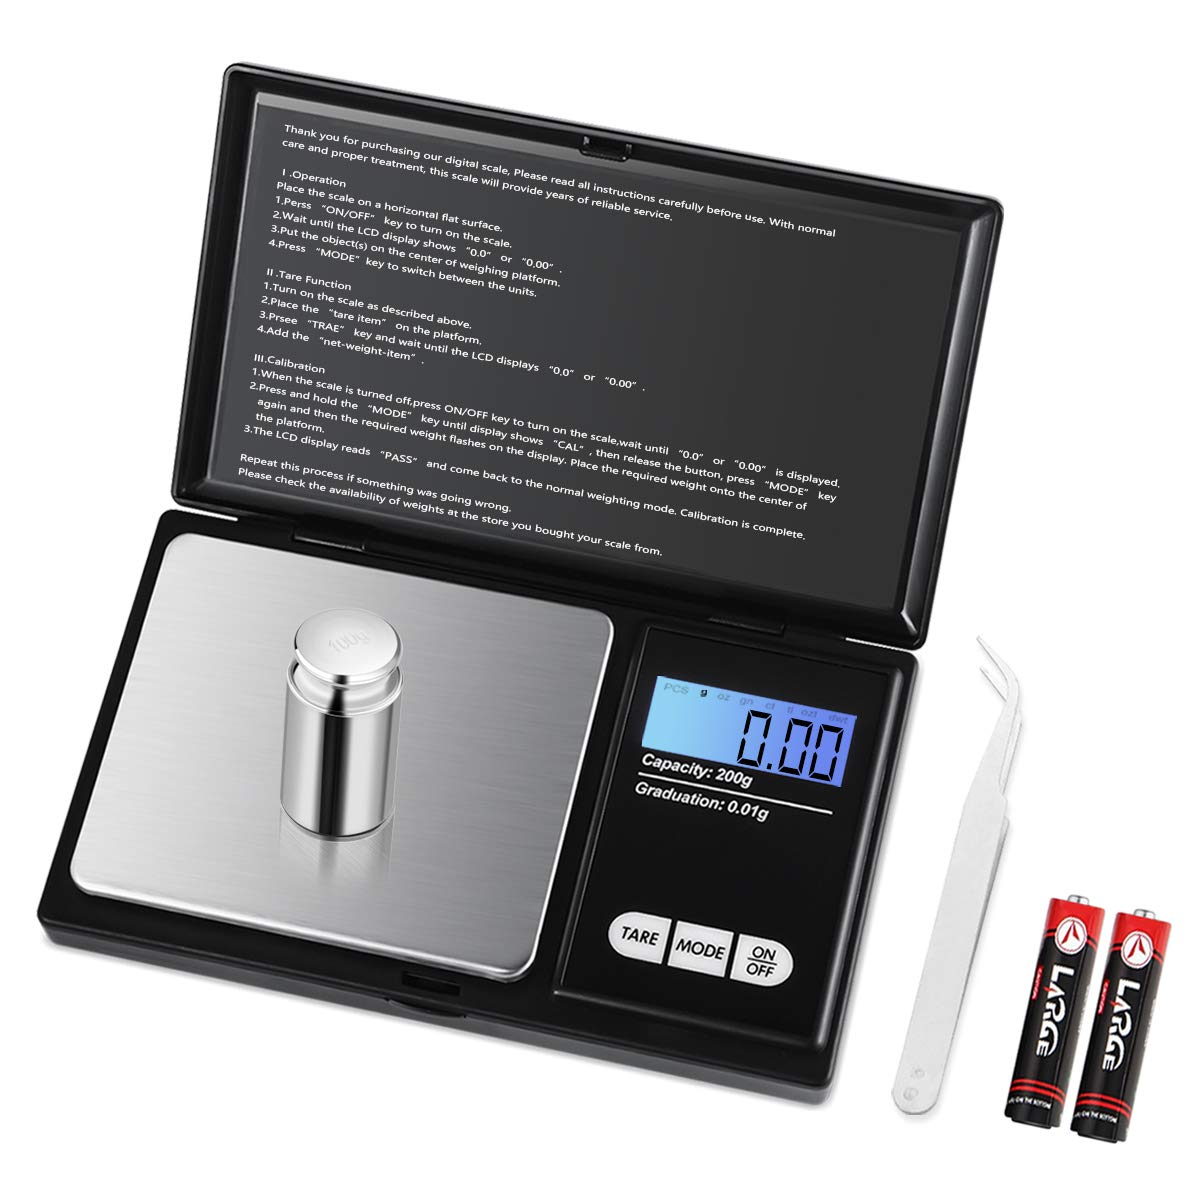 (2019 New) Brifit Digital Mini Scale, 200g /0.01g Pocket Scale, 50g calibration weight, Electronic Smart Scale, LCD Backlit Display, 6 Units, Auto Off, Tare, Stainless Steel by AMIR